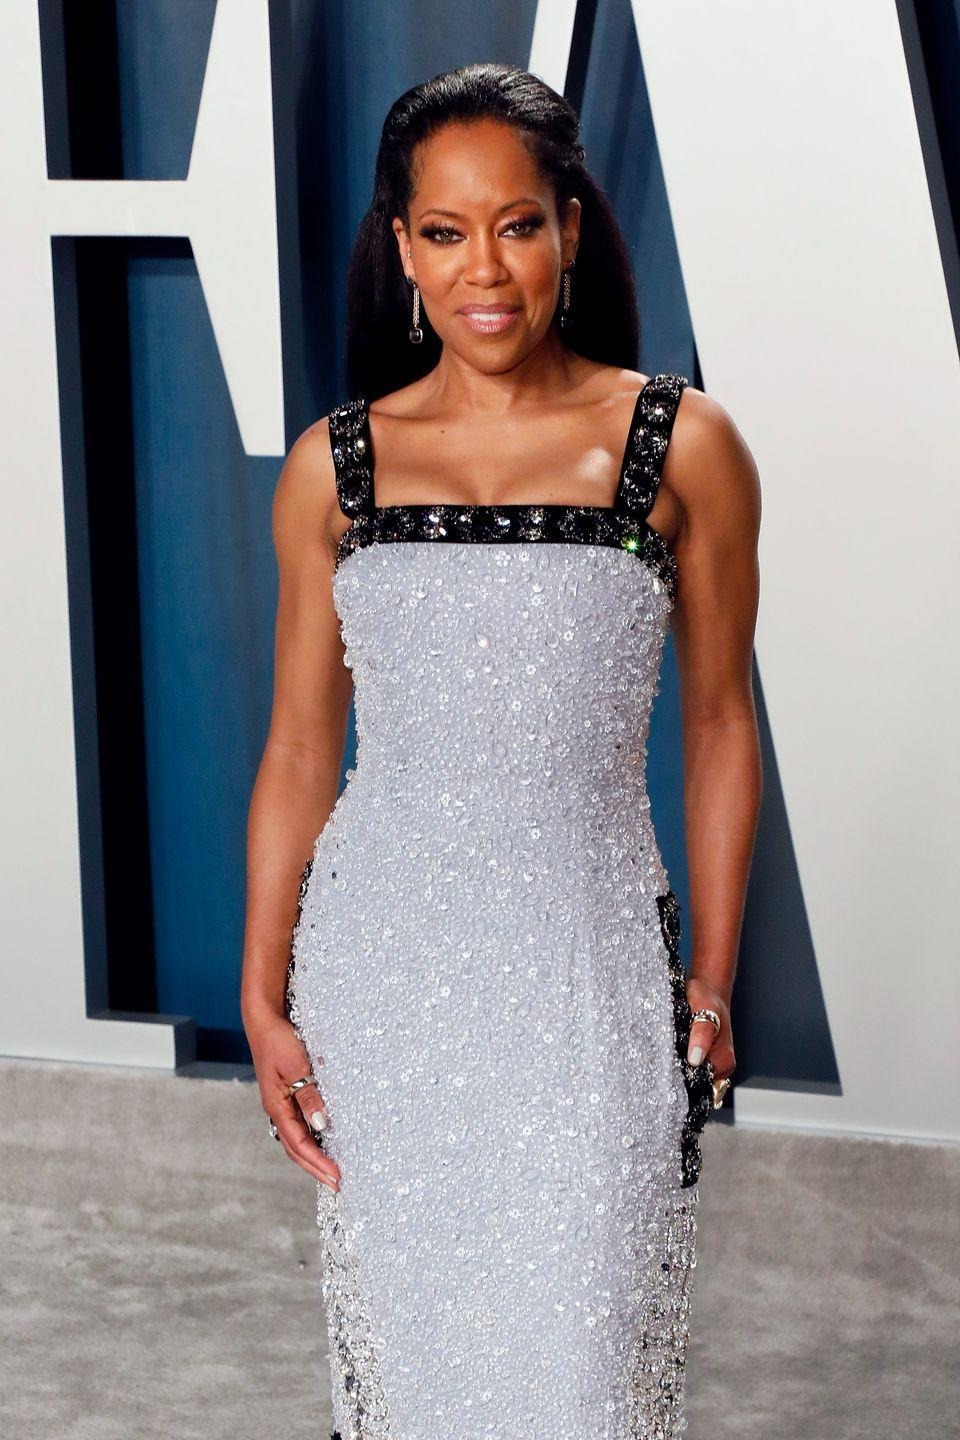 "<p><strong>Claim to fame: </strong>Actress, director</p><p><strong>Why she's extraordinary:</strong> King has been absolutely <a href=""https://www.oprahmag.com/entertainment/tv-movies/g26398928/regina-king-movies-list/"" rel=""nofollow noopener"" target=""_blank"" data-ylk=""slk:killing it in a career that spans decades"" class=""link rapid-noclick-resp""><em>killing </em>it in a career that spans decades</a>. In 2019, she won a Golden Globe and <a href=""https://www.oprahmag.com/entertainment/tv-movies/a26503125/regina-king-oscars-oprah-reaction/"" rel=""nofollow noopener"" target=""_blank"" data-ylk=""slk:a supporting actress Oscar"" class=""link rapid-noclick-resp"">a supporting actress Oscar</a> for her role in <em>If Beale Street Could Talk</em><em>.</em> And her critically acclaimed HBO dystopian drama, <em>Watchmen,</em> riveted audiences and earned her a fourth Emmy.</p>"